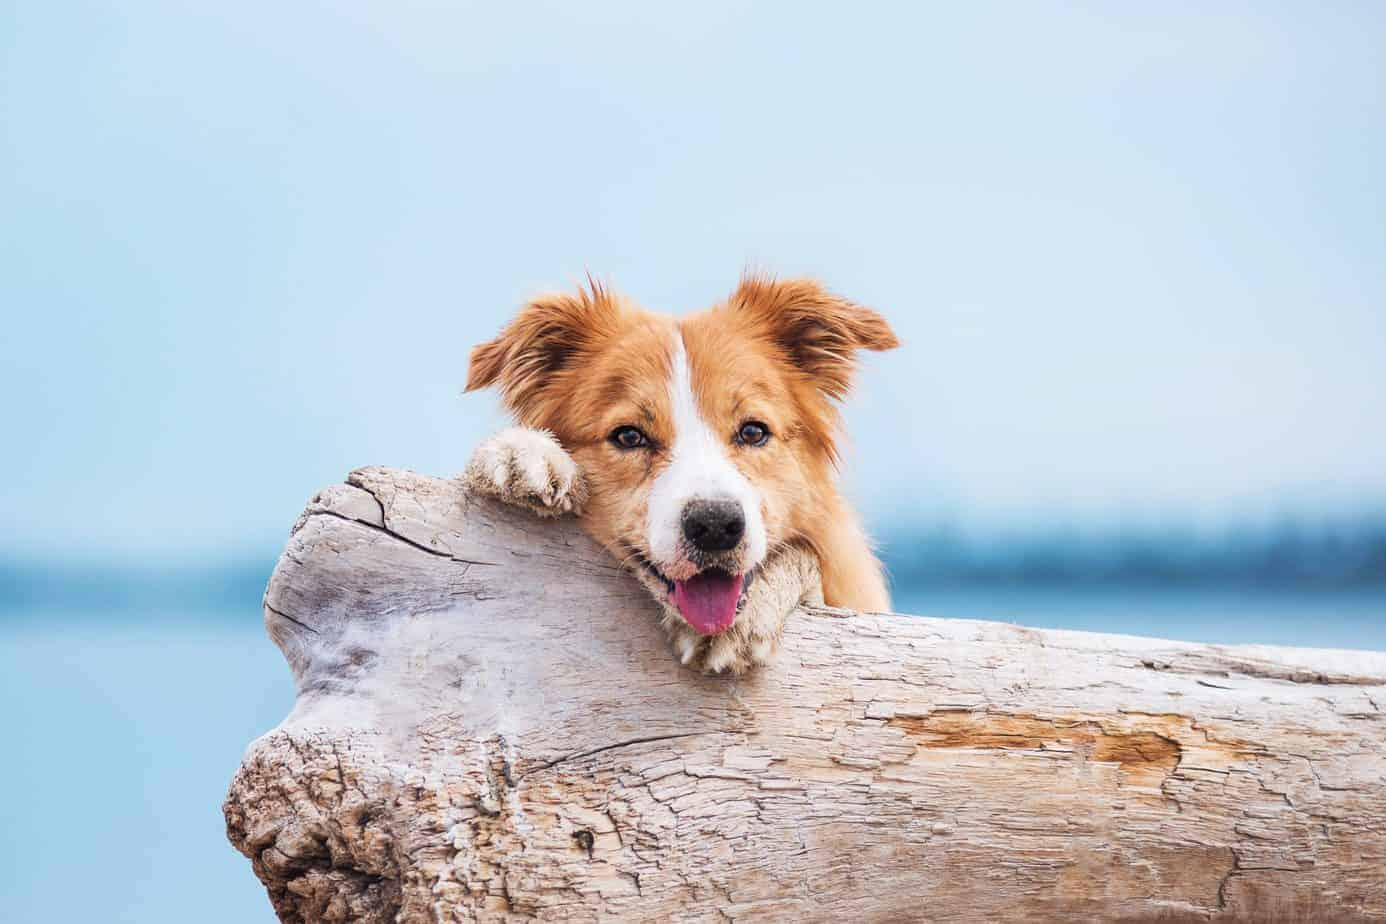 Happy Australian Shepherd on the beach. CBD for pets: Premium Jane or other well-trusted brands are great places to get started, as they guarantee both efficacy and CBD content.